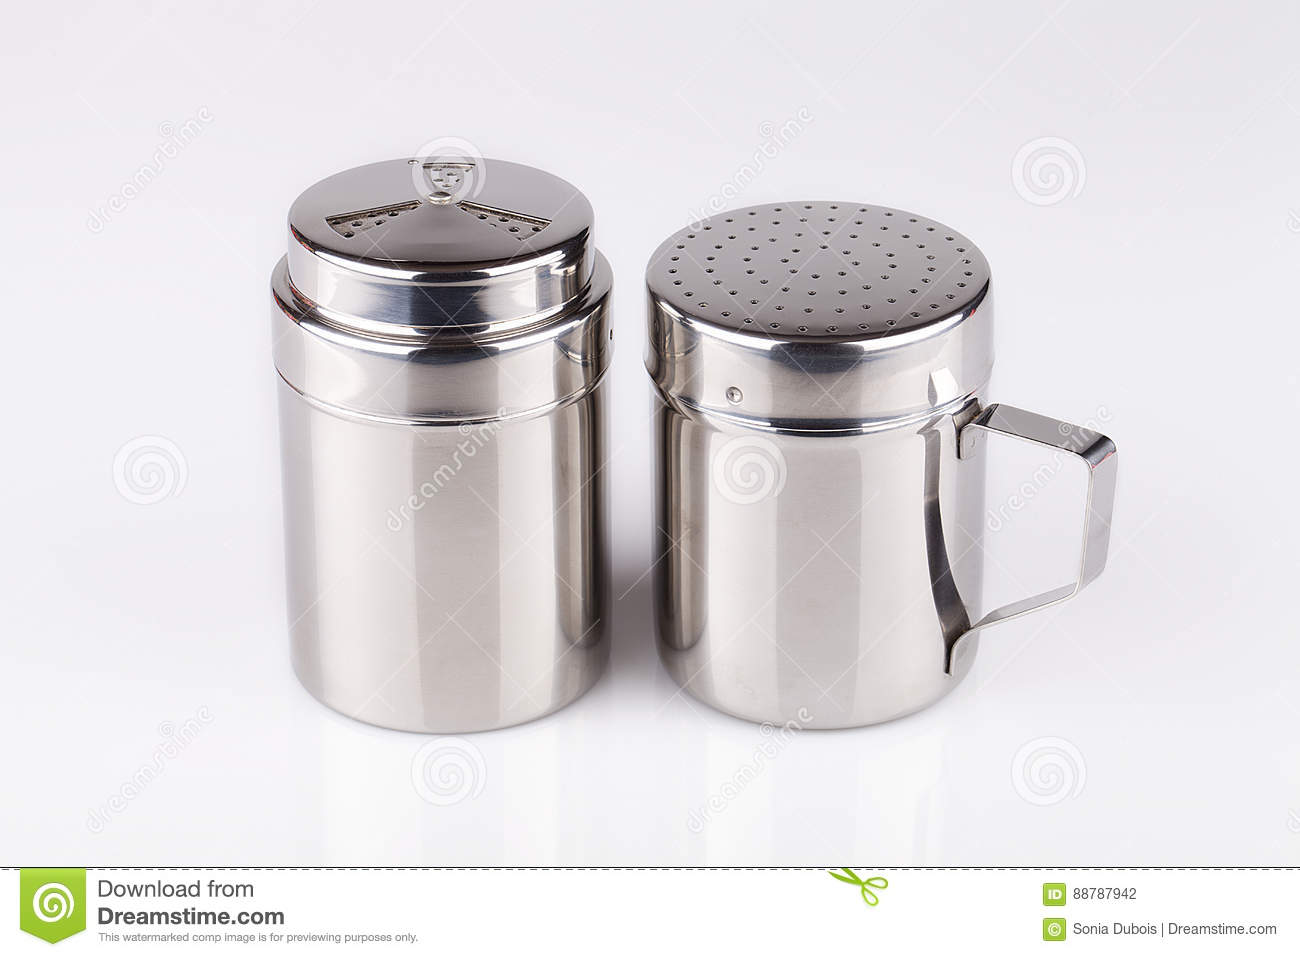 Salt And Pepper Shakers Stock Photo Image Of White Kitchen 88787942